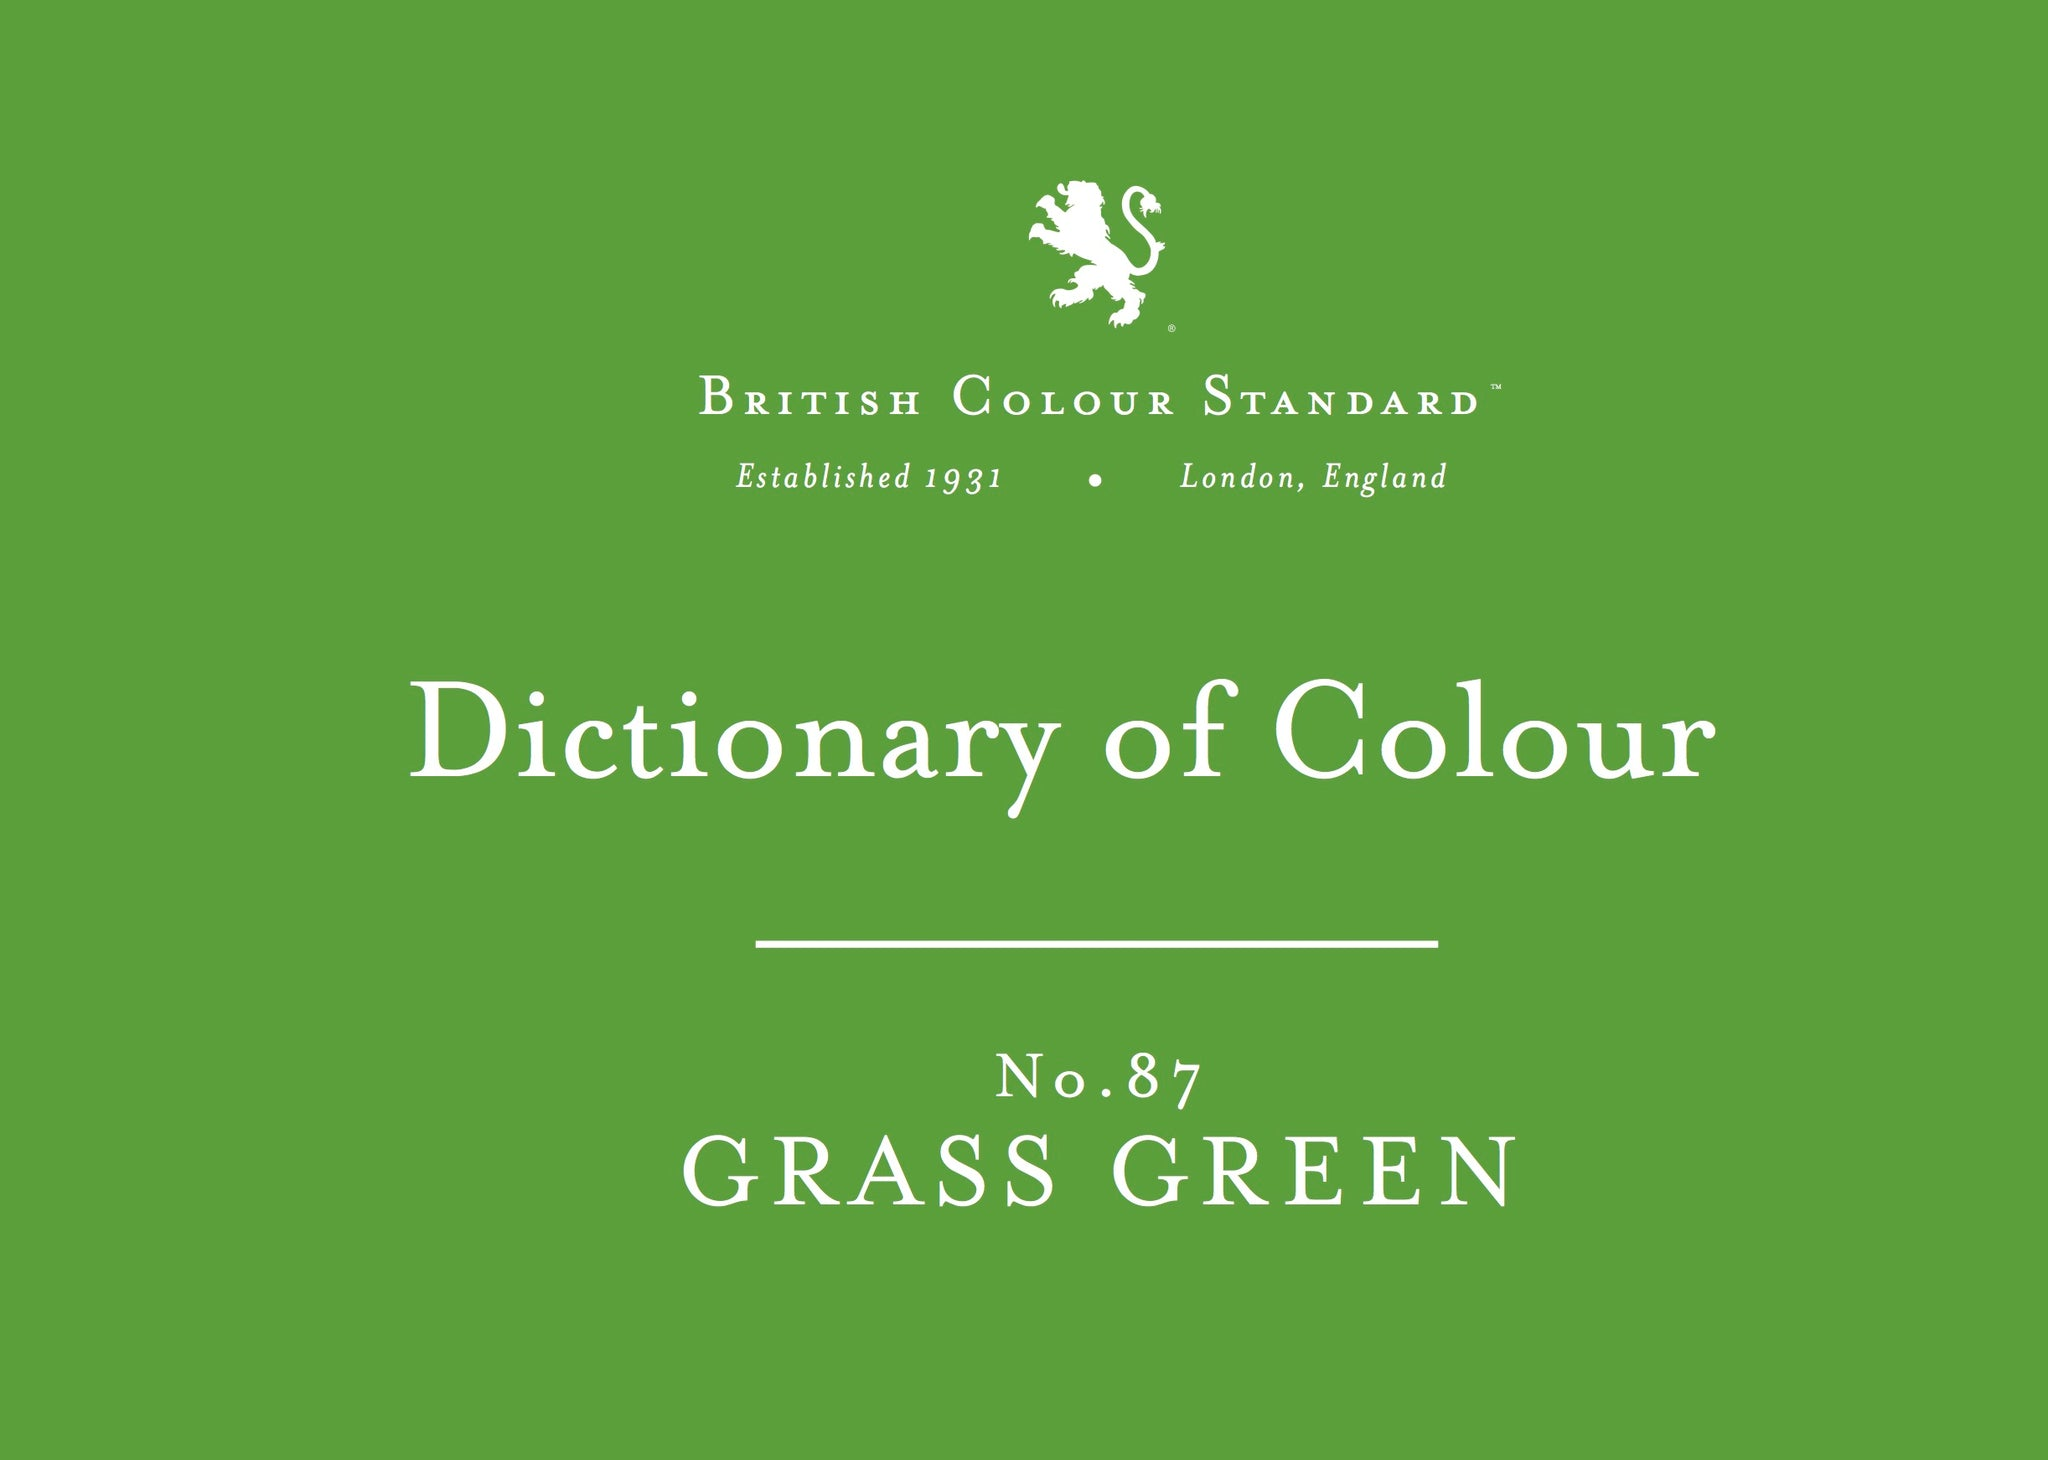 BRITISH COLOUR STANDARD - Grass Green No. 87